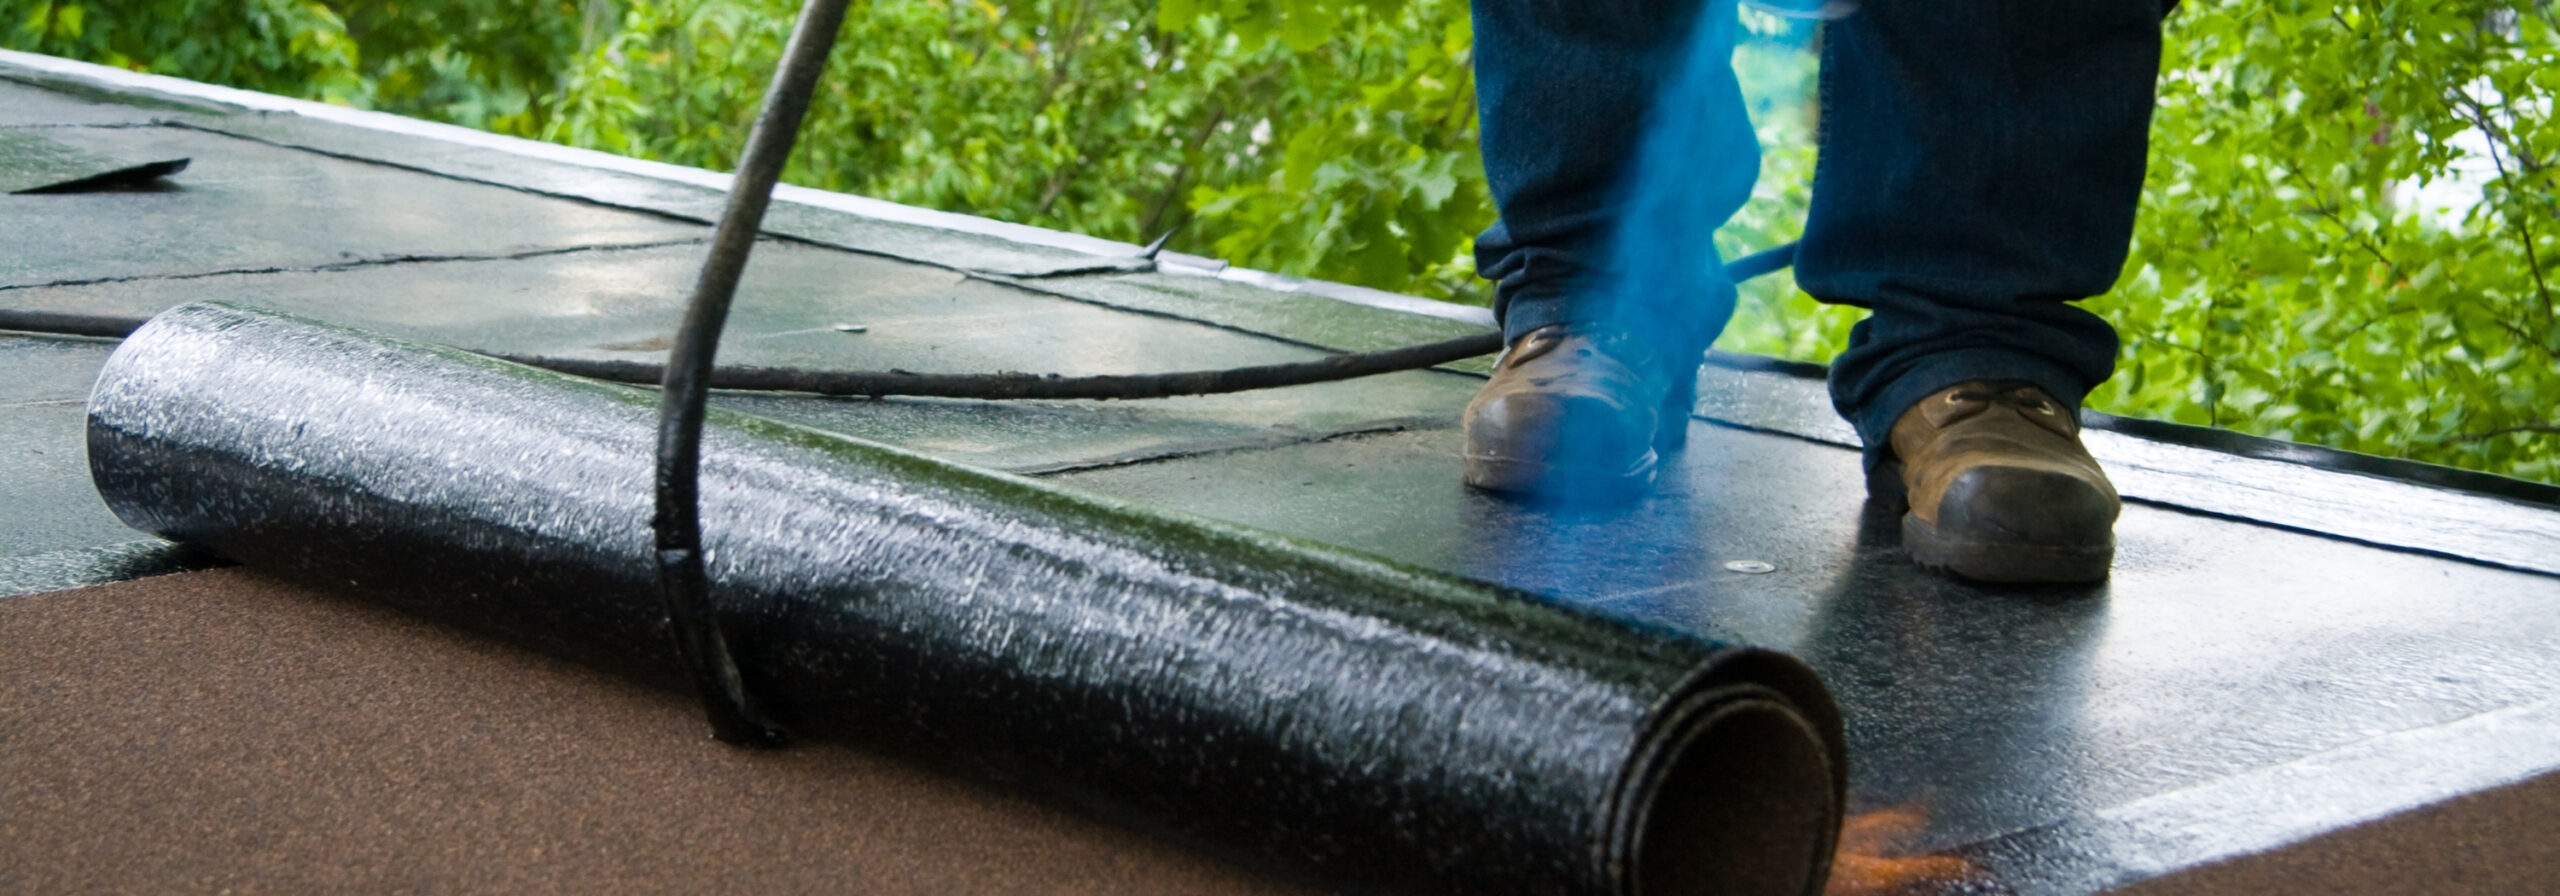 What Are the Benefits of Hiring an Experienced Waterproofing Contractor in Ottawa?